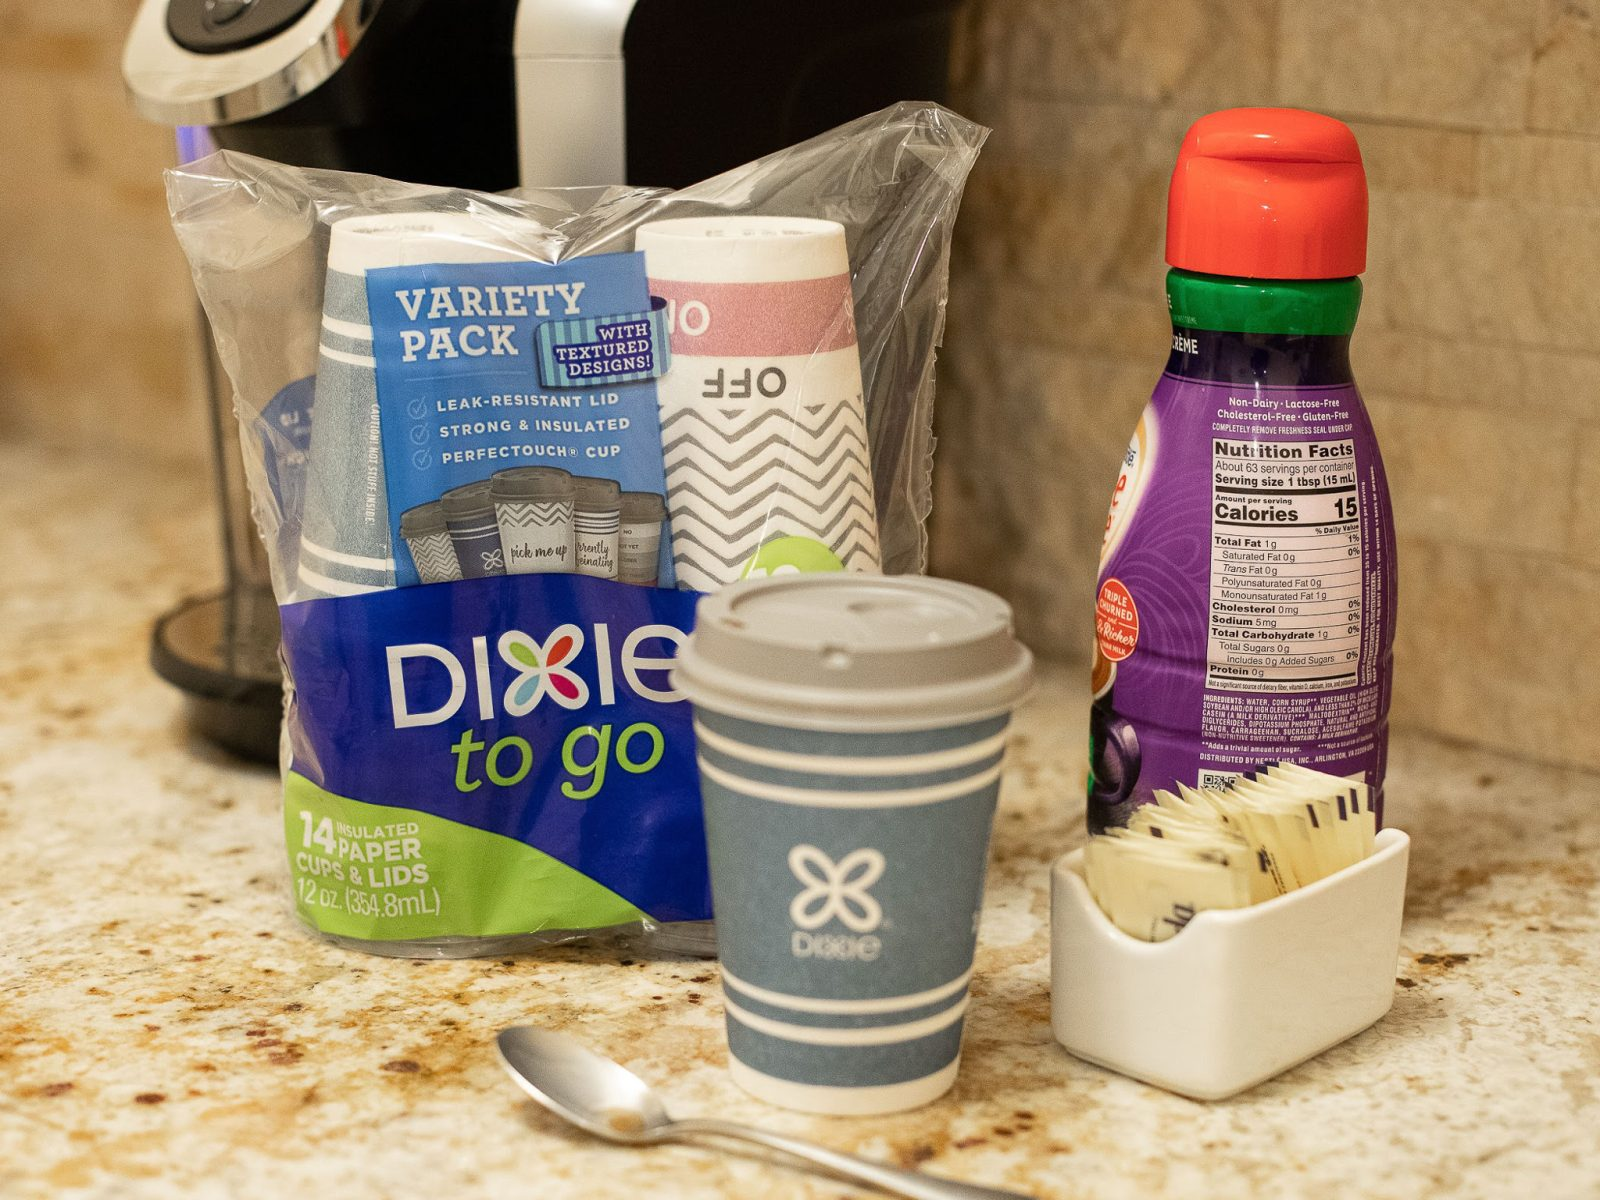 Dixie To Go Cups As Low As $1.69 At Publix on I Heart Publix